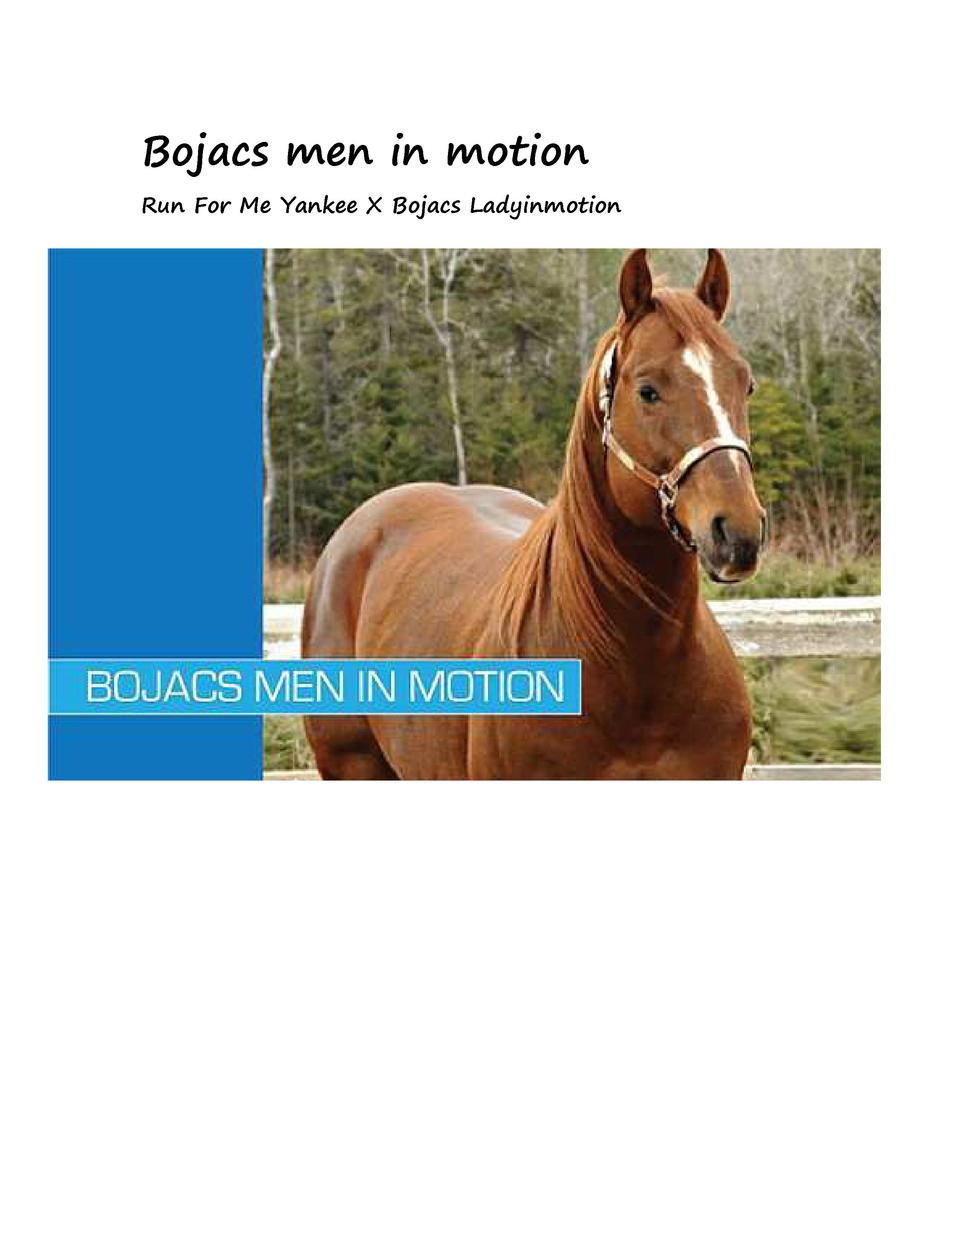 Bojacs men in motion Run For Me Yankee X Bojacs Ladyinmotion